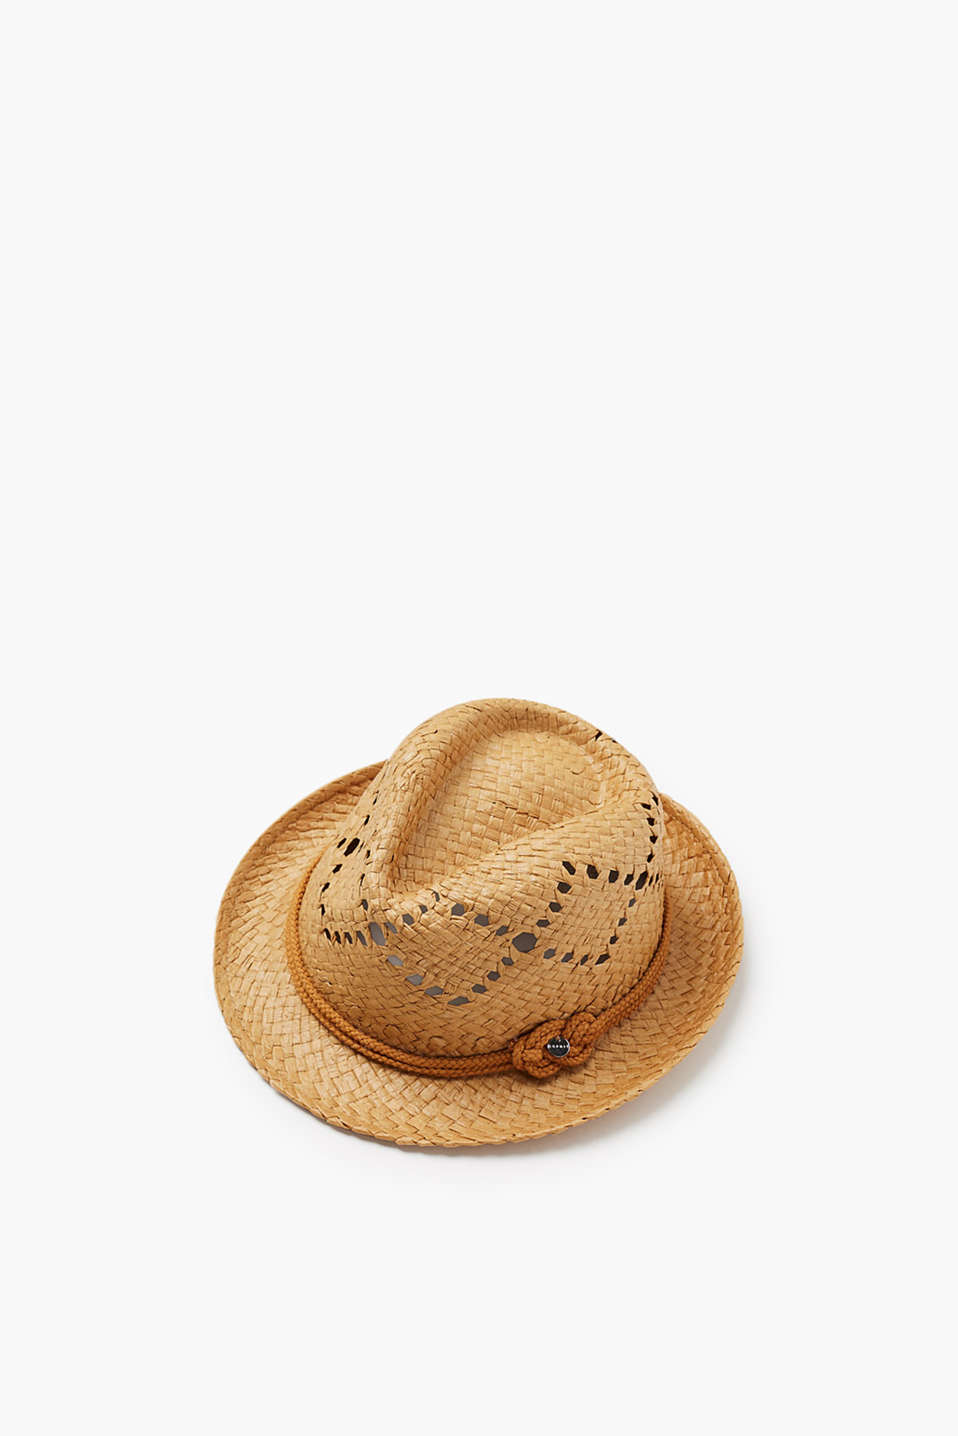 Trilby hat in a summery look with a tone-in-tone braided band